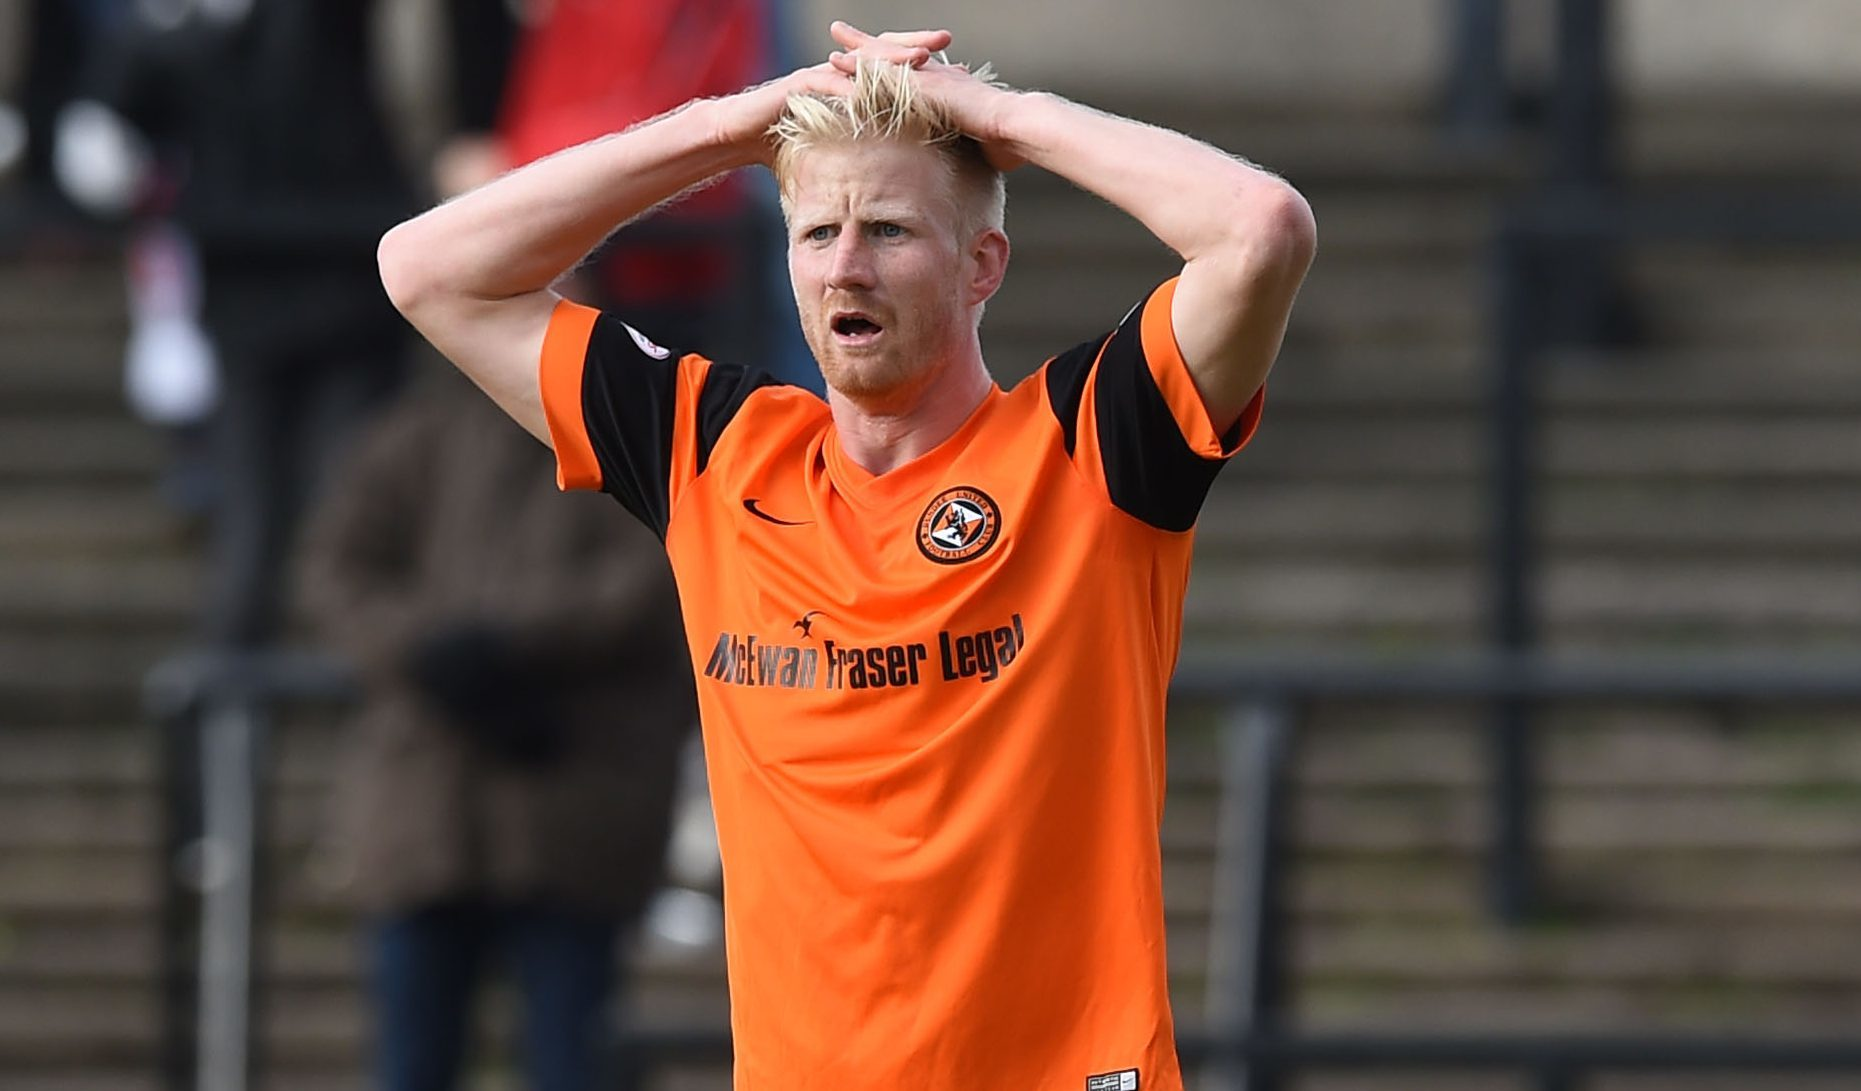 Dundee United's Thomas Mikkelsen is frustrated as his goal is disallowed